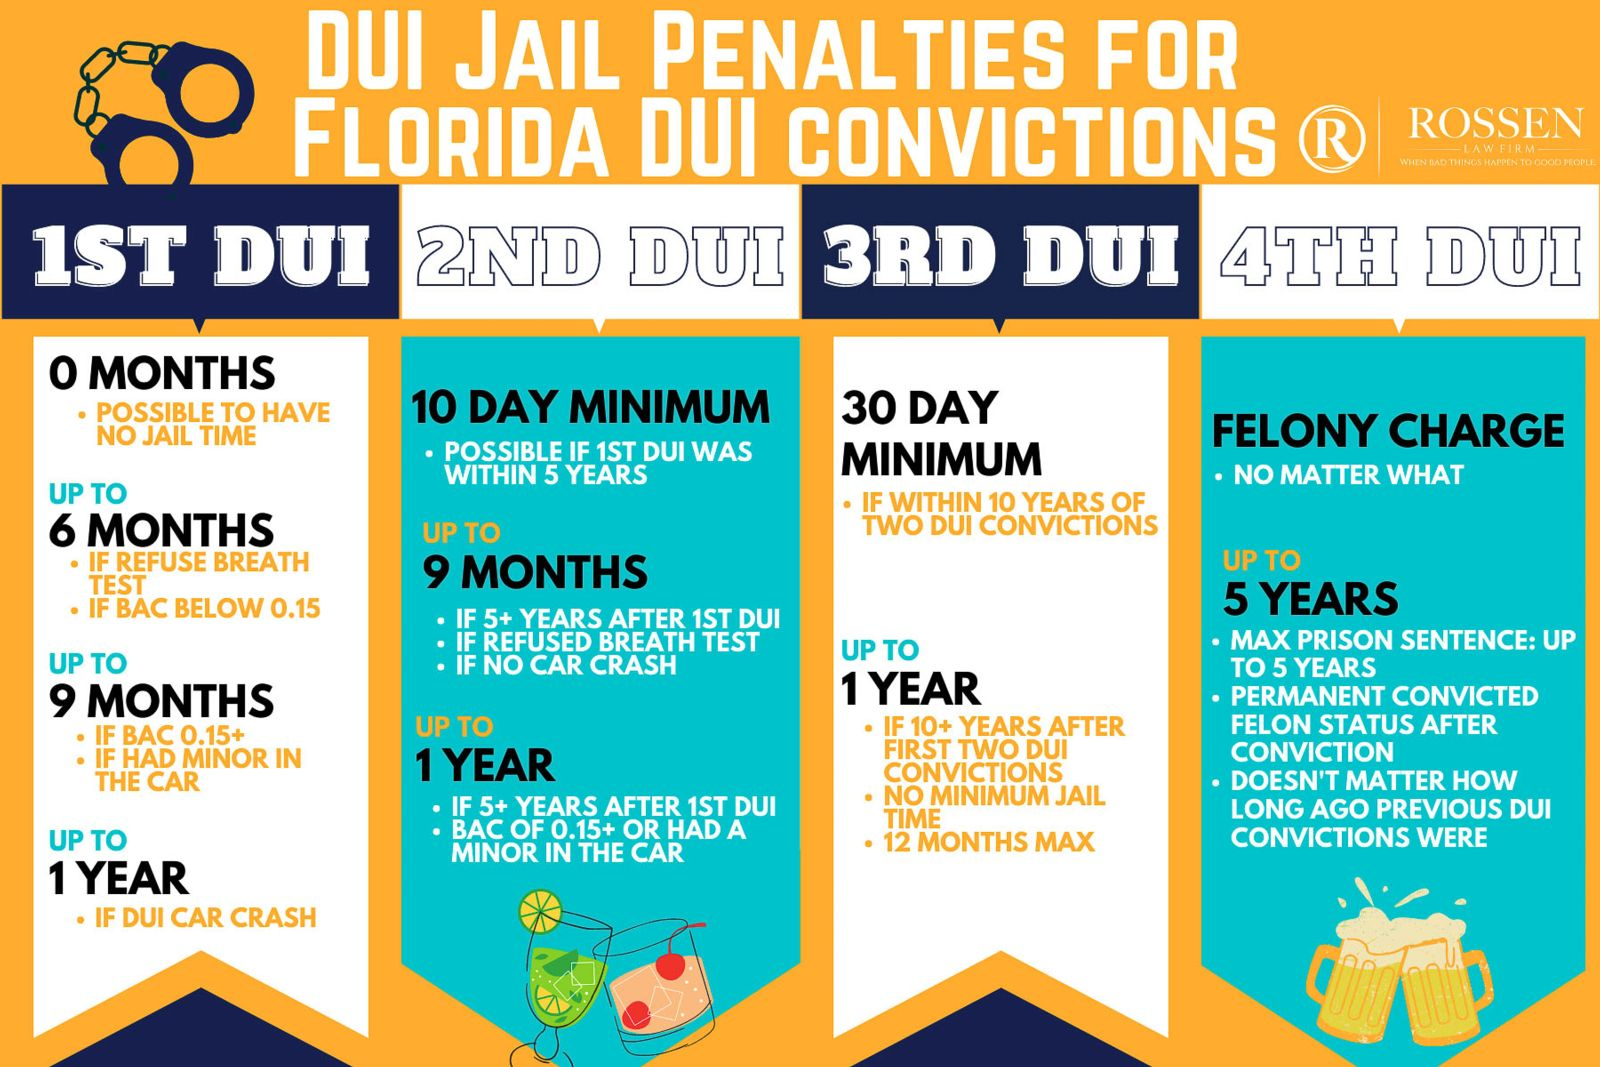 Florida DUI jail and prison penalties in Fort Lauderdale, Sunrise, Boca Raton and South Florida Criminal DUI defense attorney